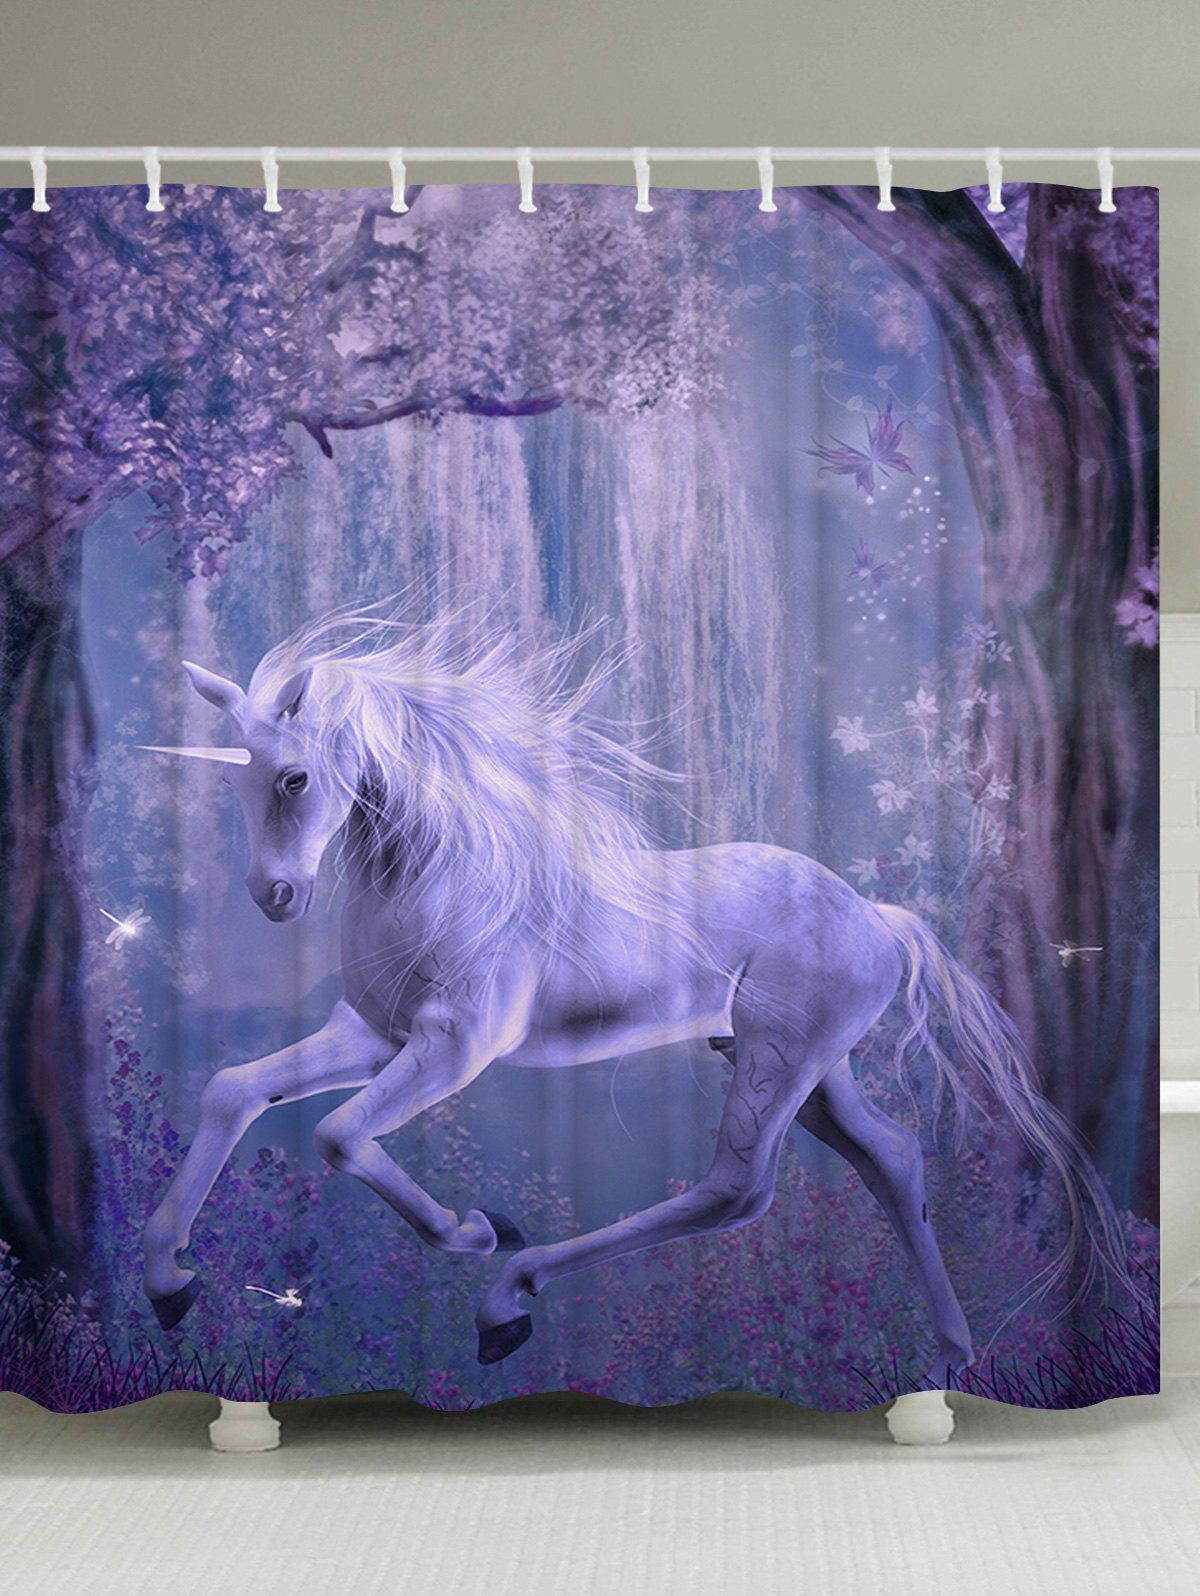 Unicorn Fairyland Shower Curtain Bathroom Decor fenix веселые истории